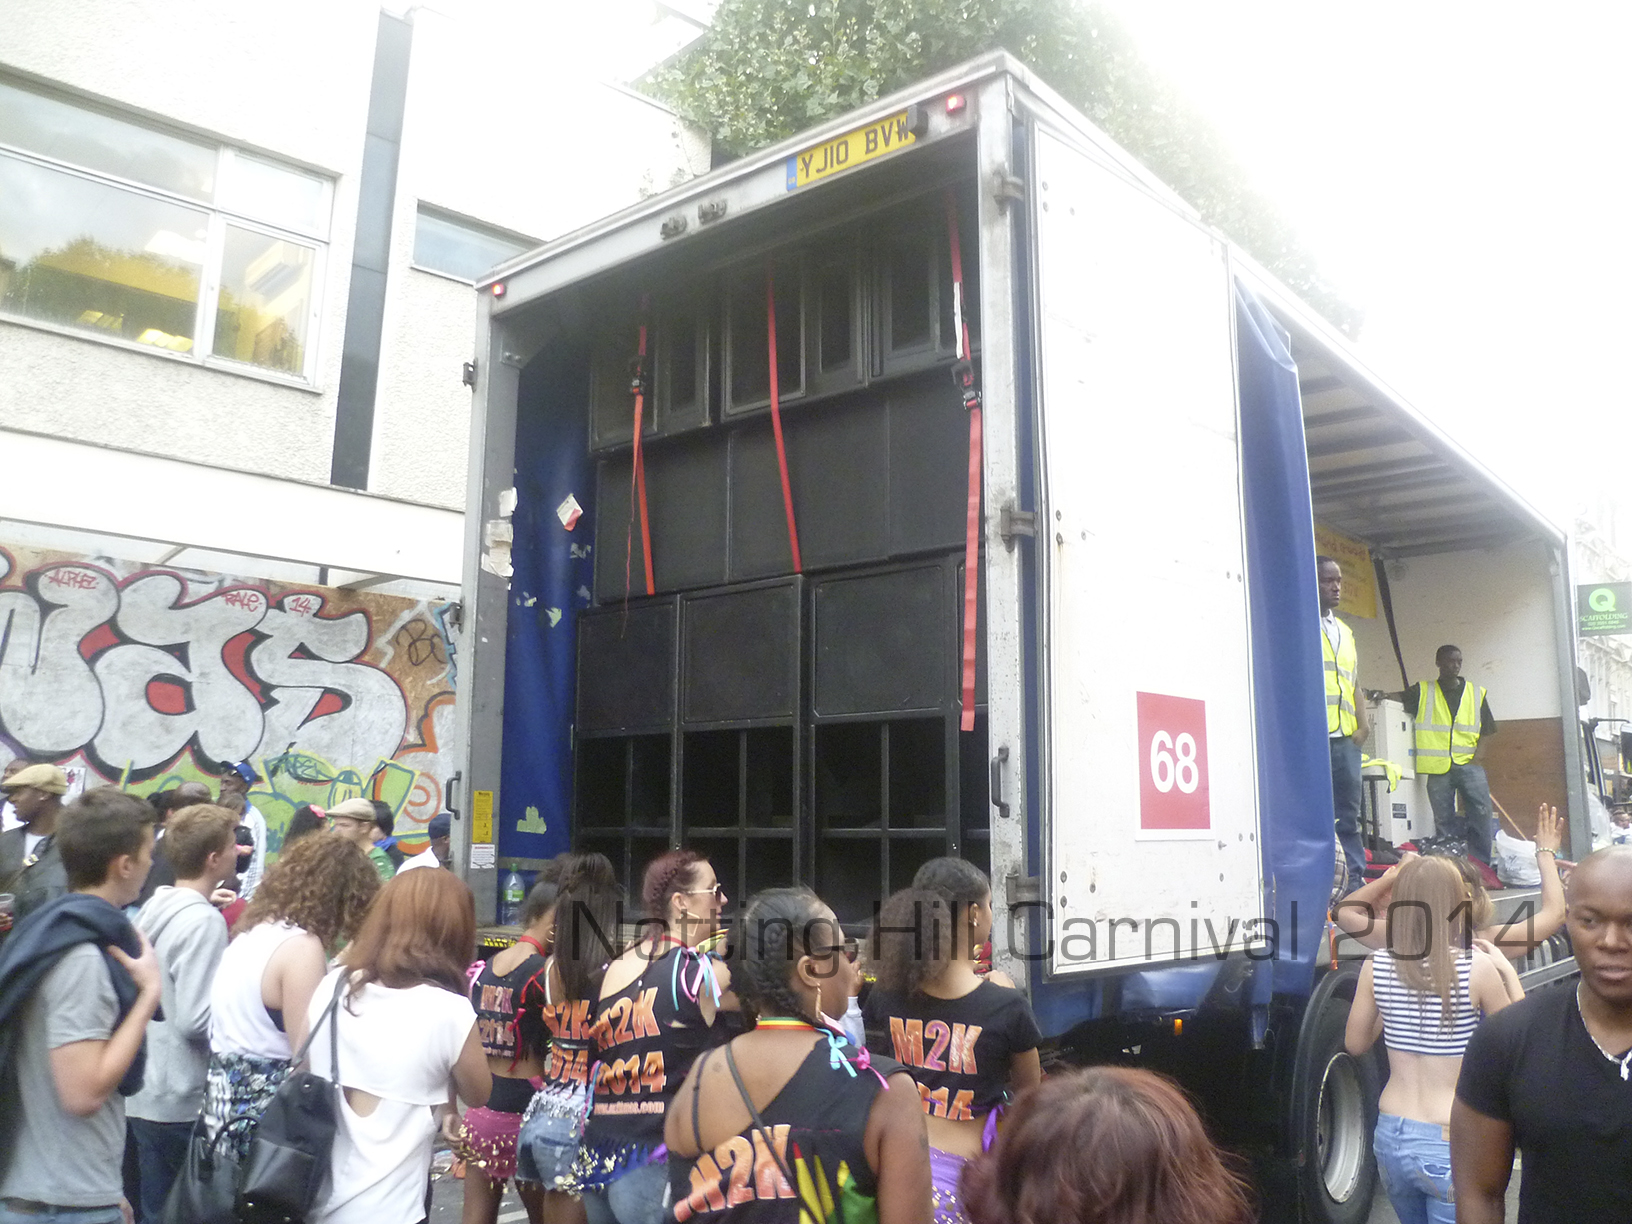 Notting-Hill-Carnival-2014-Float-Sound-System-4